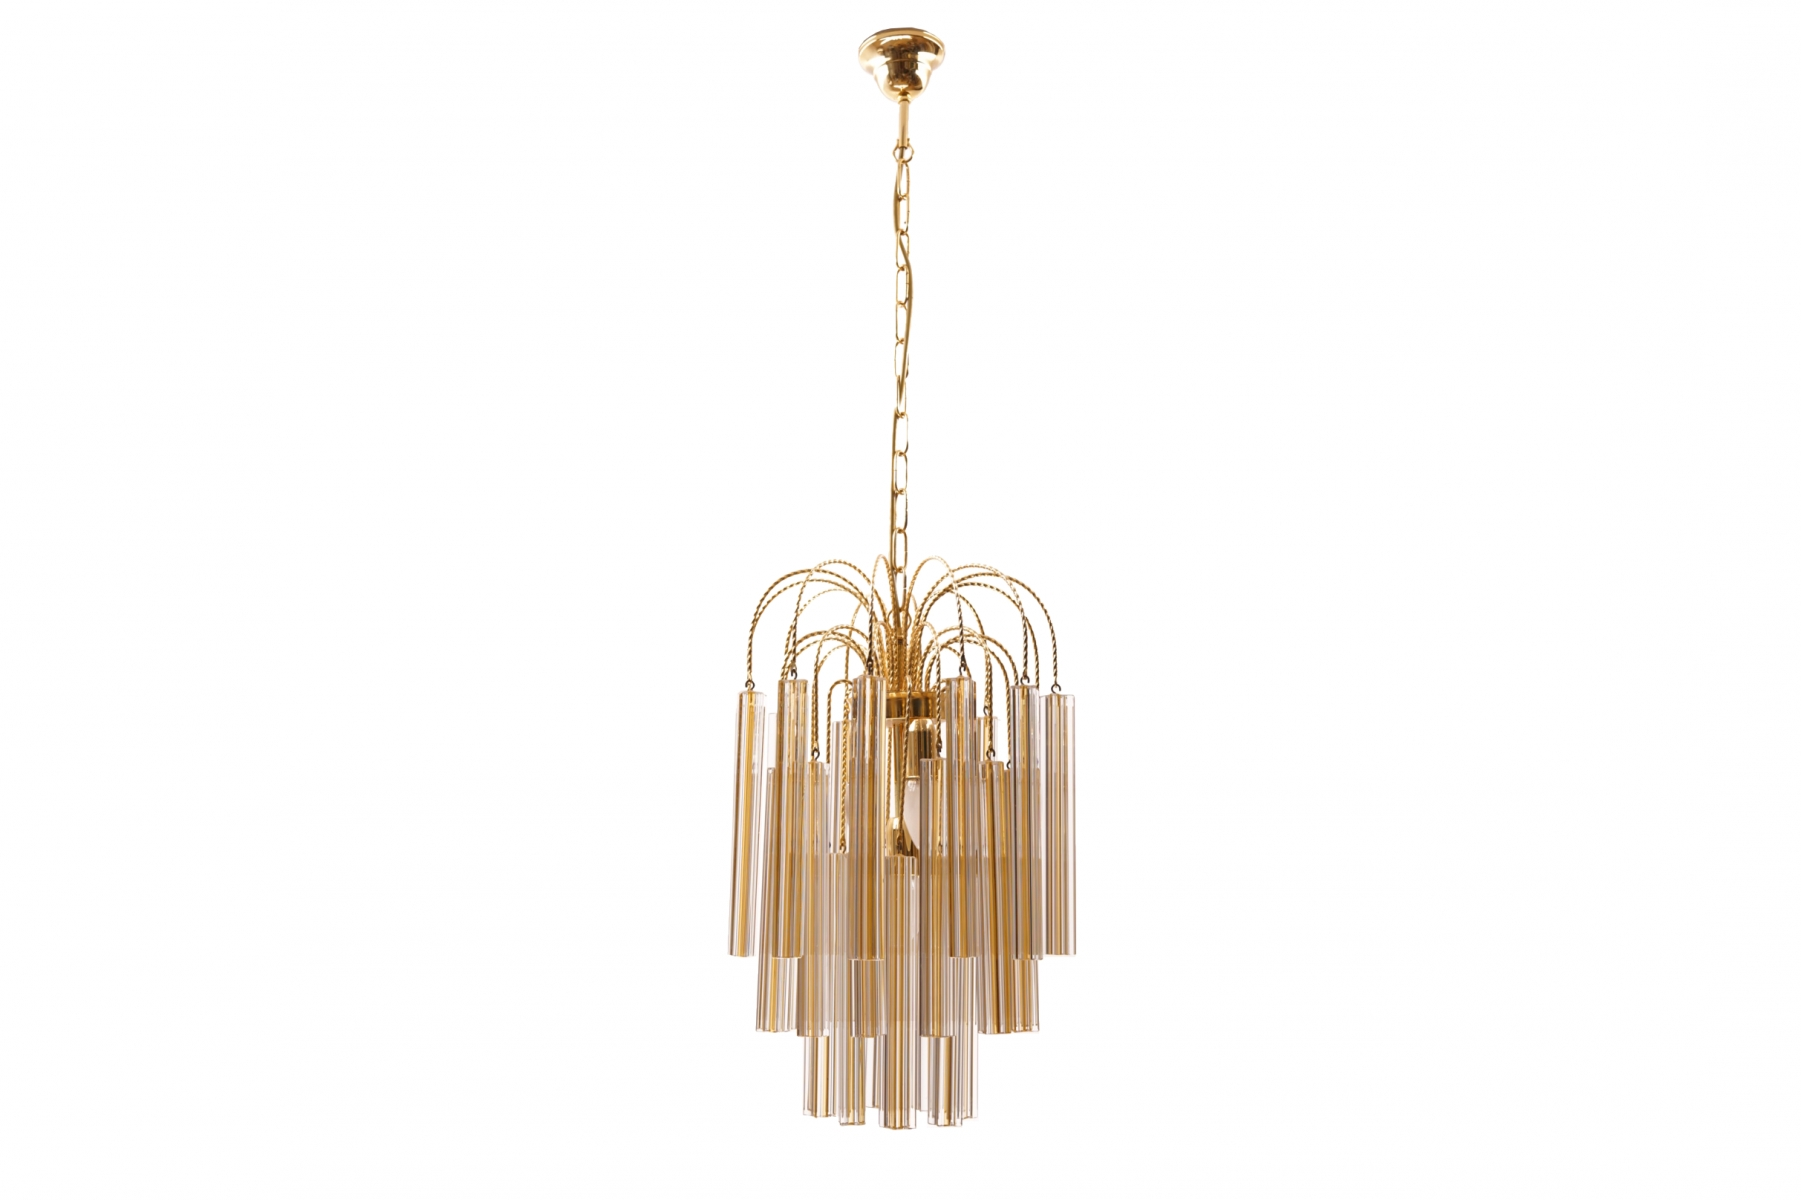 Newest Vintage Chandelier With Regard To Vintage Chandelier With Murano Glass From Venini For Sale At Pamono (View 9 of 20)